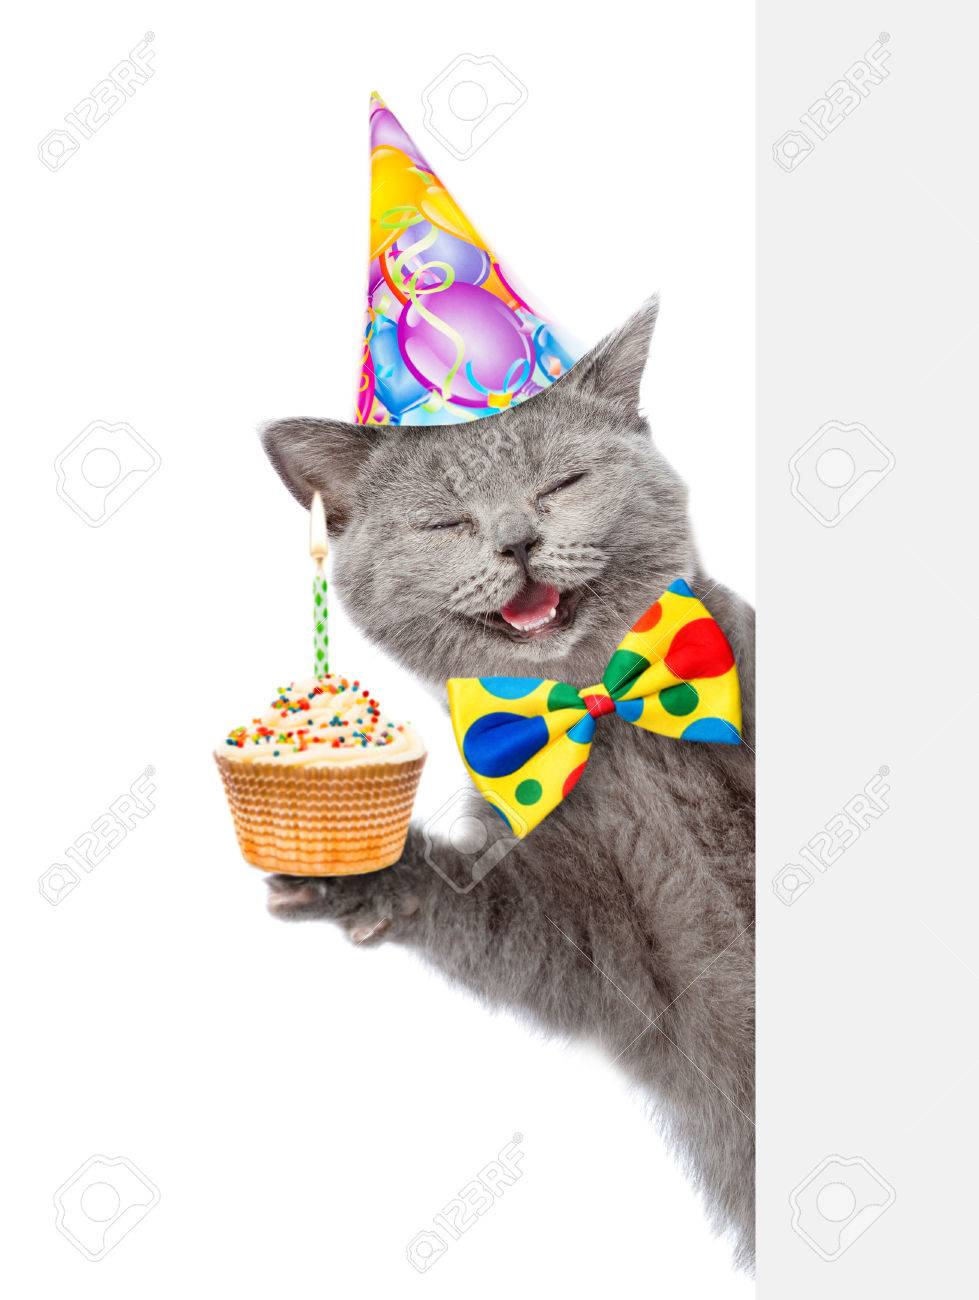 Happy Cat In Birthday Hat With Cupcake Holding A Pointing Stick And Points On Empty Banner